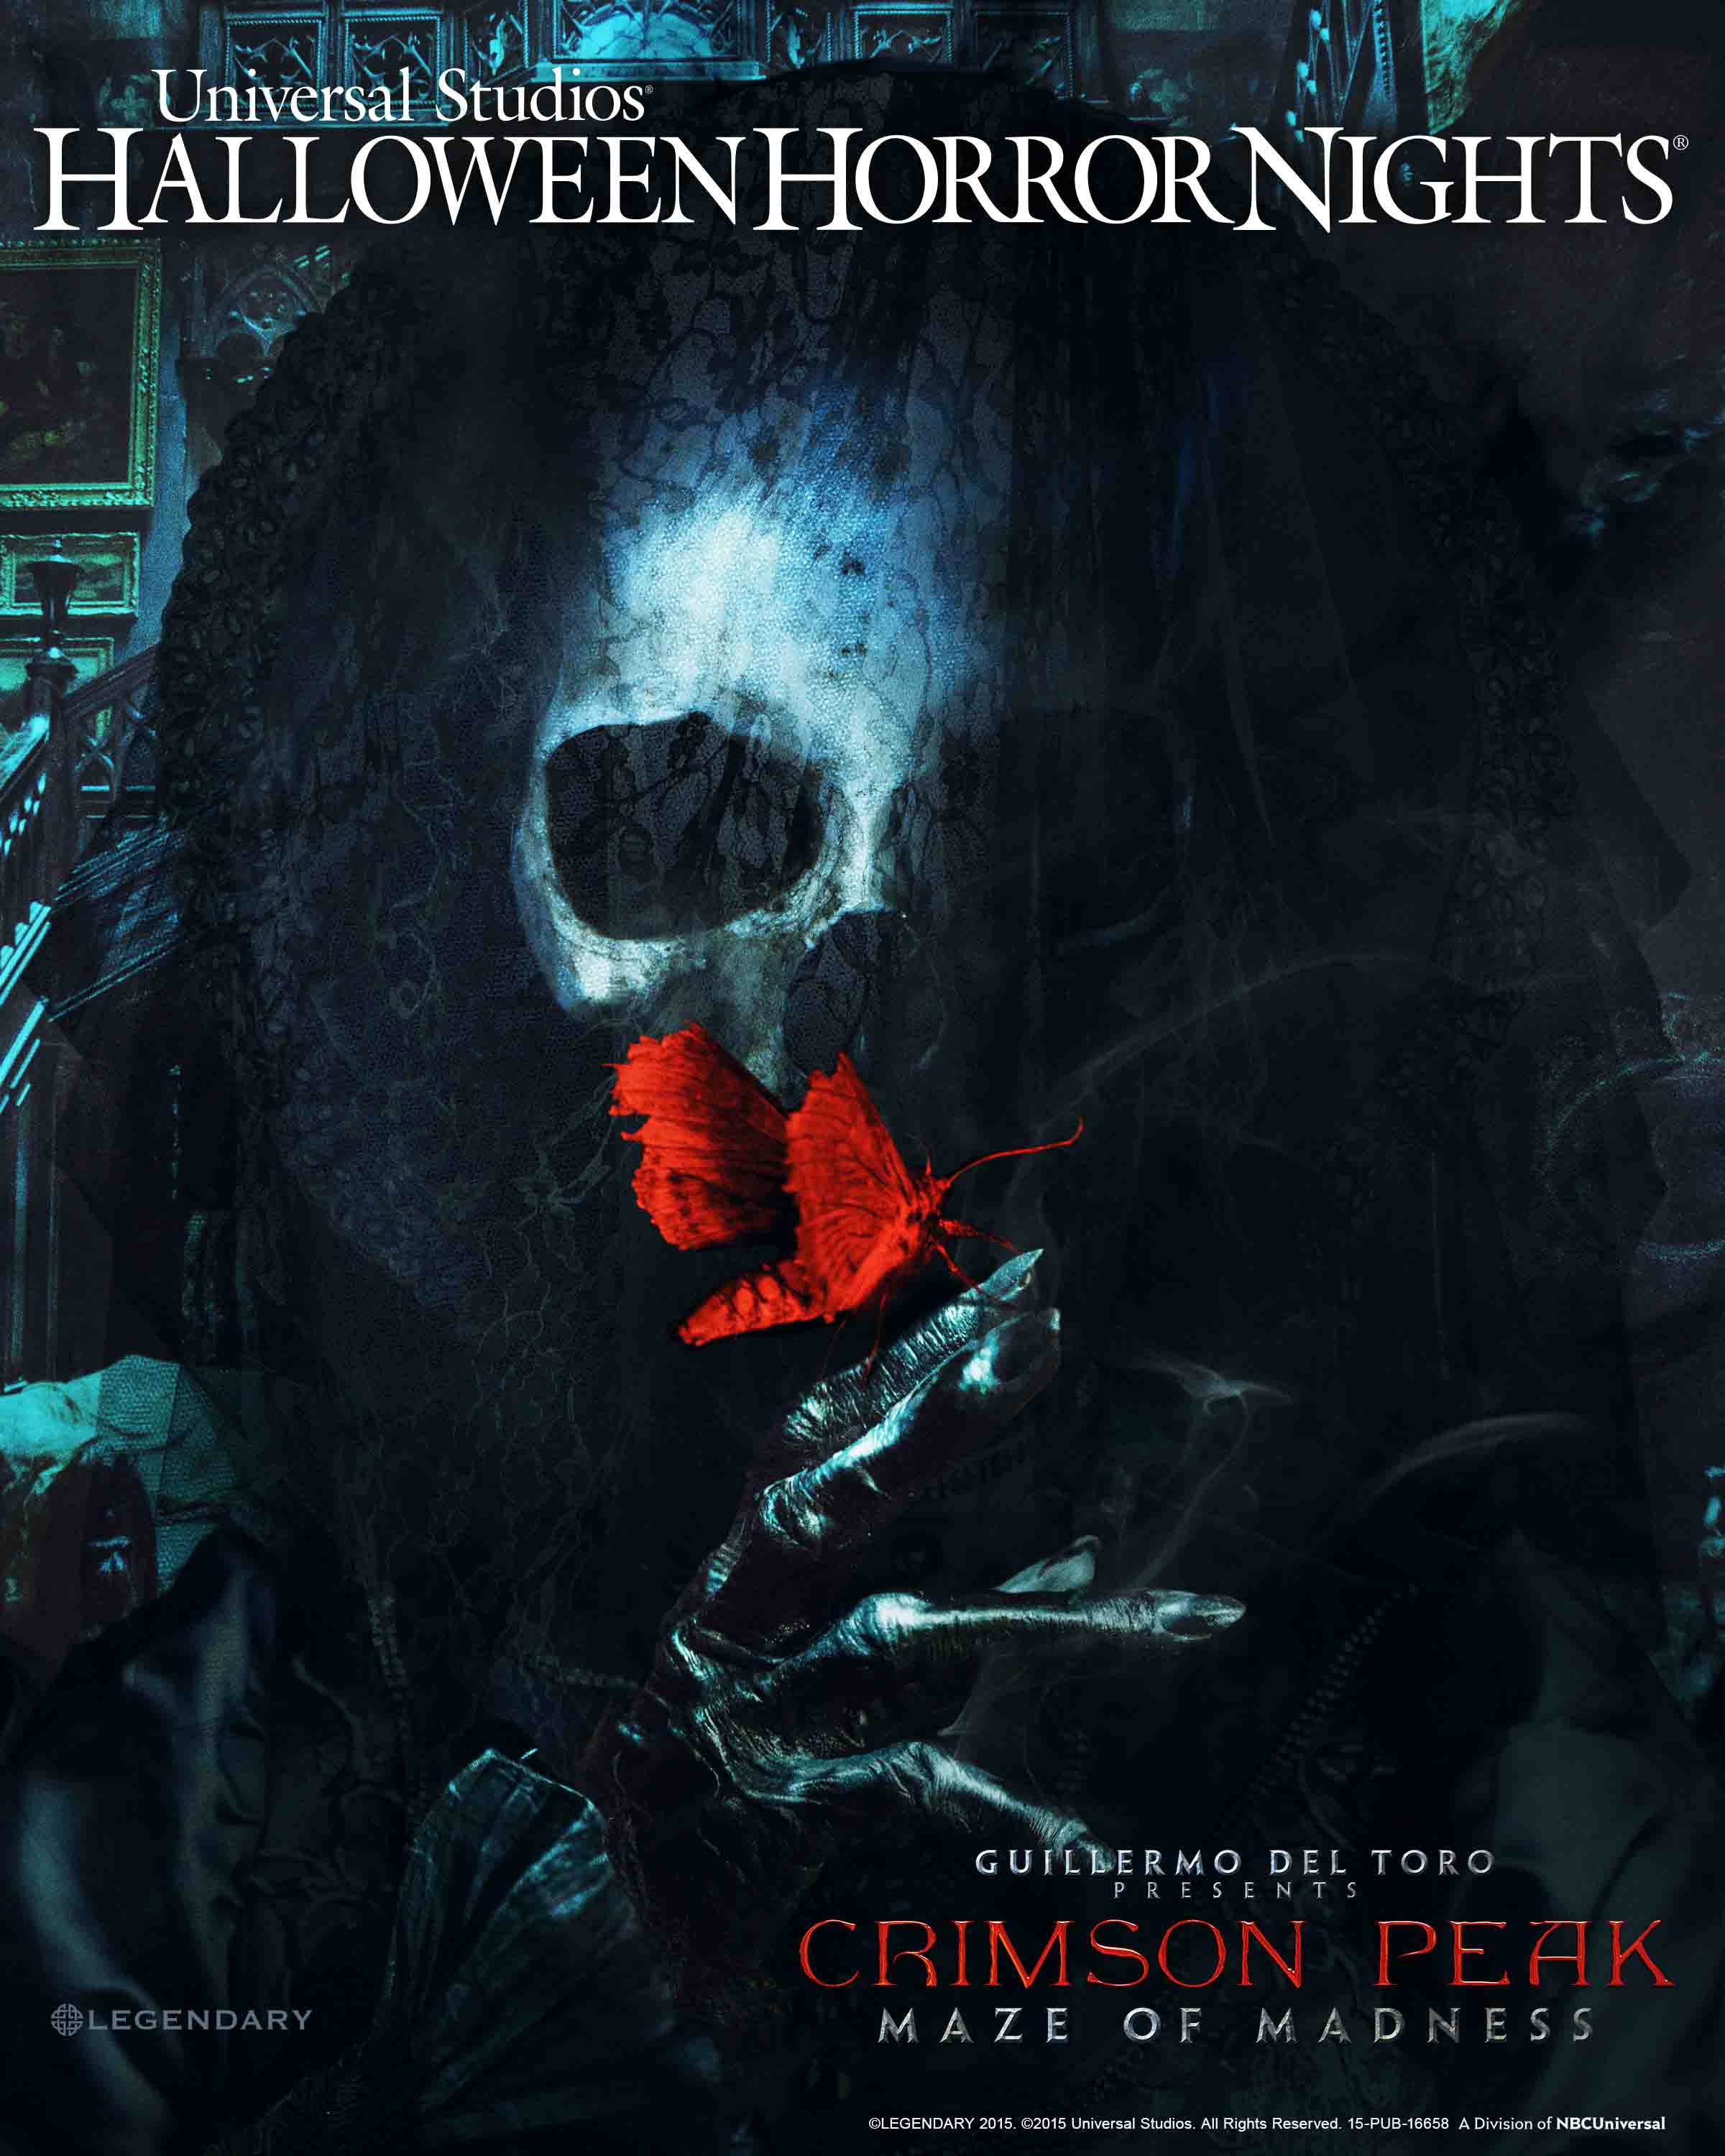 "SDCC 2015: Universal Studios Hollywood Brings the Terror of Crimson Peak, from Visionary Director Guillermo del Toro, to Life in an All-Original ""Halloween Horror Nights"" Maze Inspired by Legendary and Universal Pictures' Highly-Anticipated Gothic Romance"